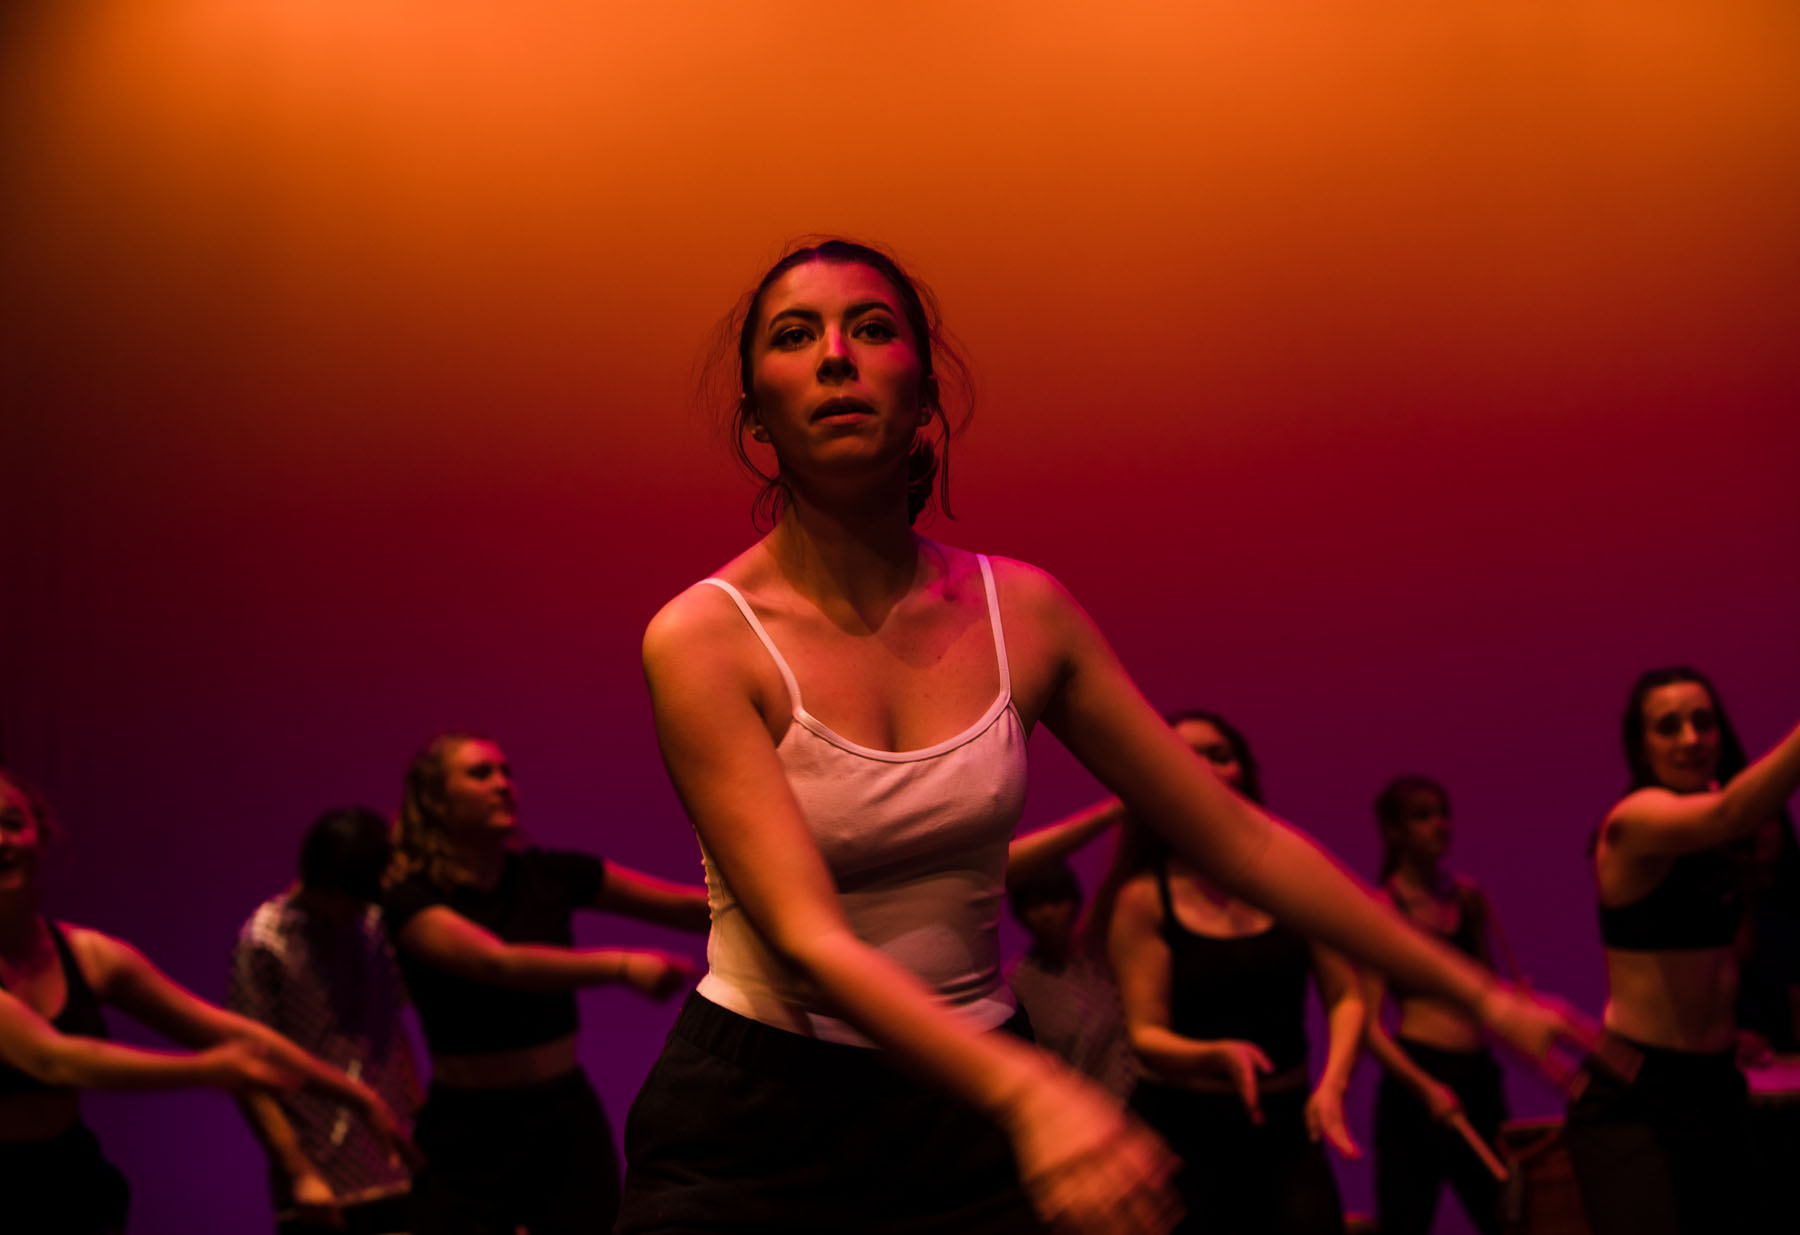 The FALA Dance Department Presents: Winter Escapades. December 18, 2019. Photo by Sean Openshaw, www.SeanOpenshaw.com